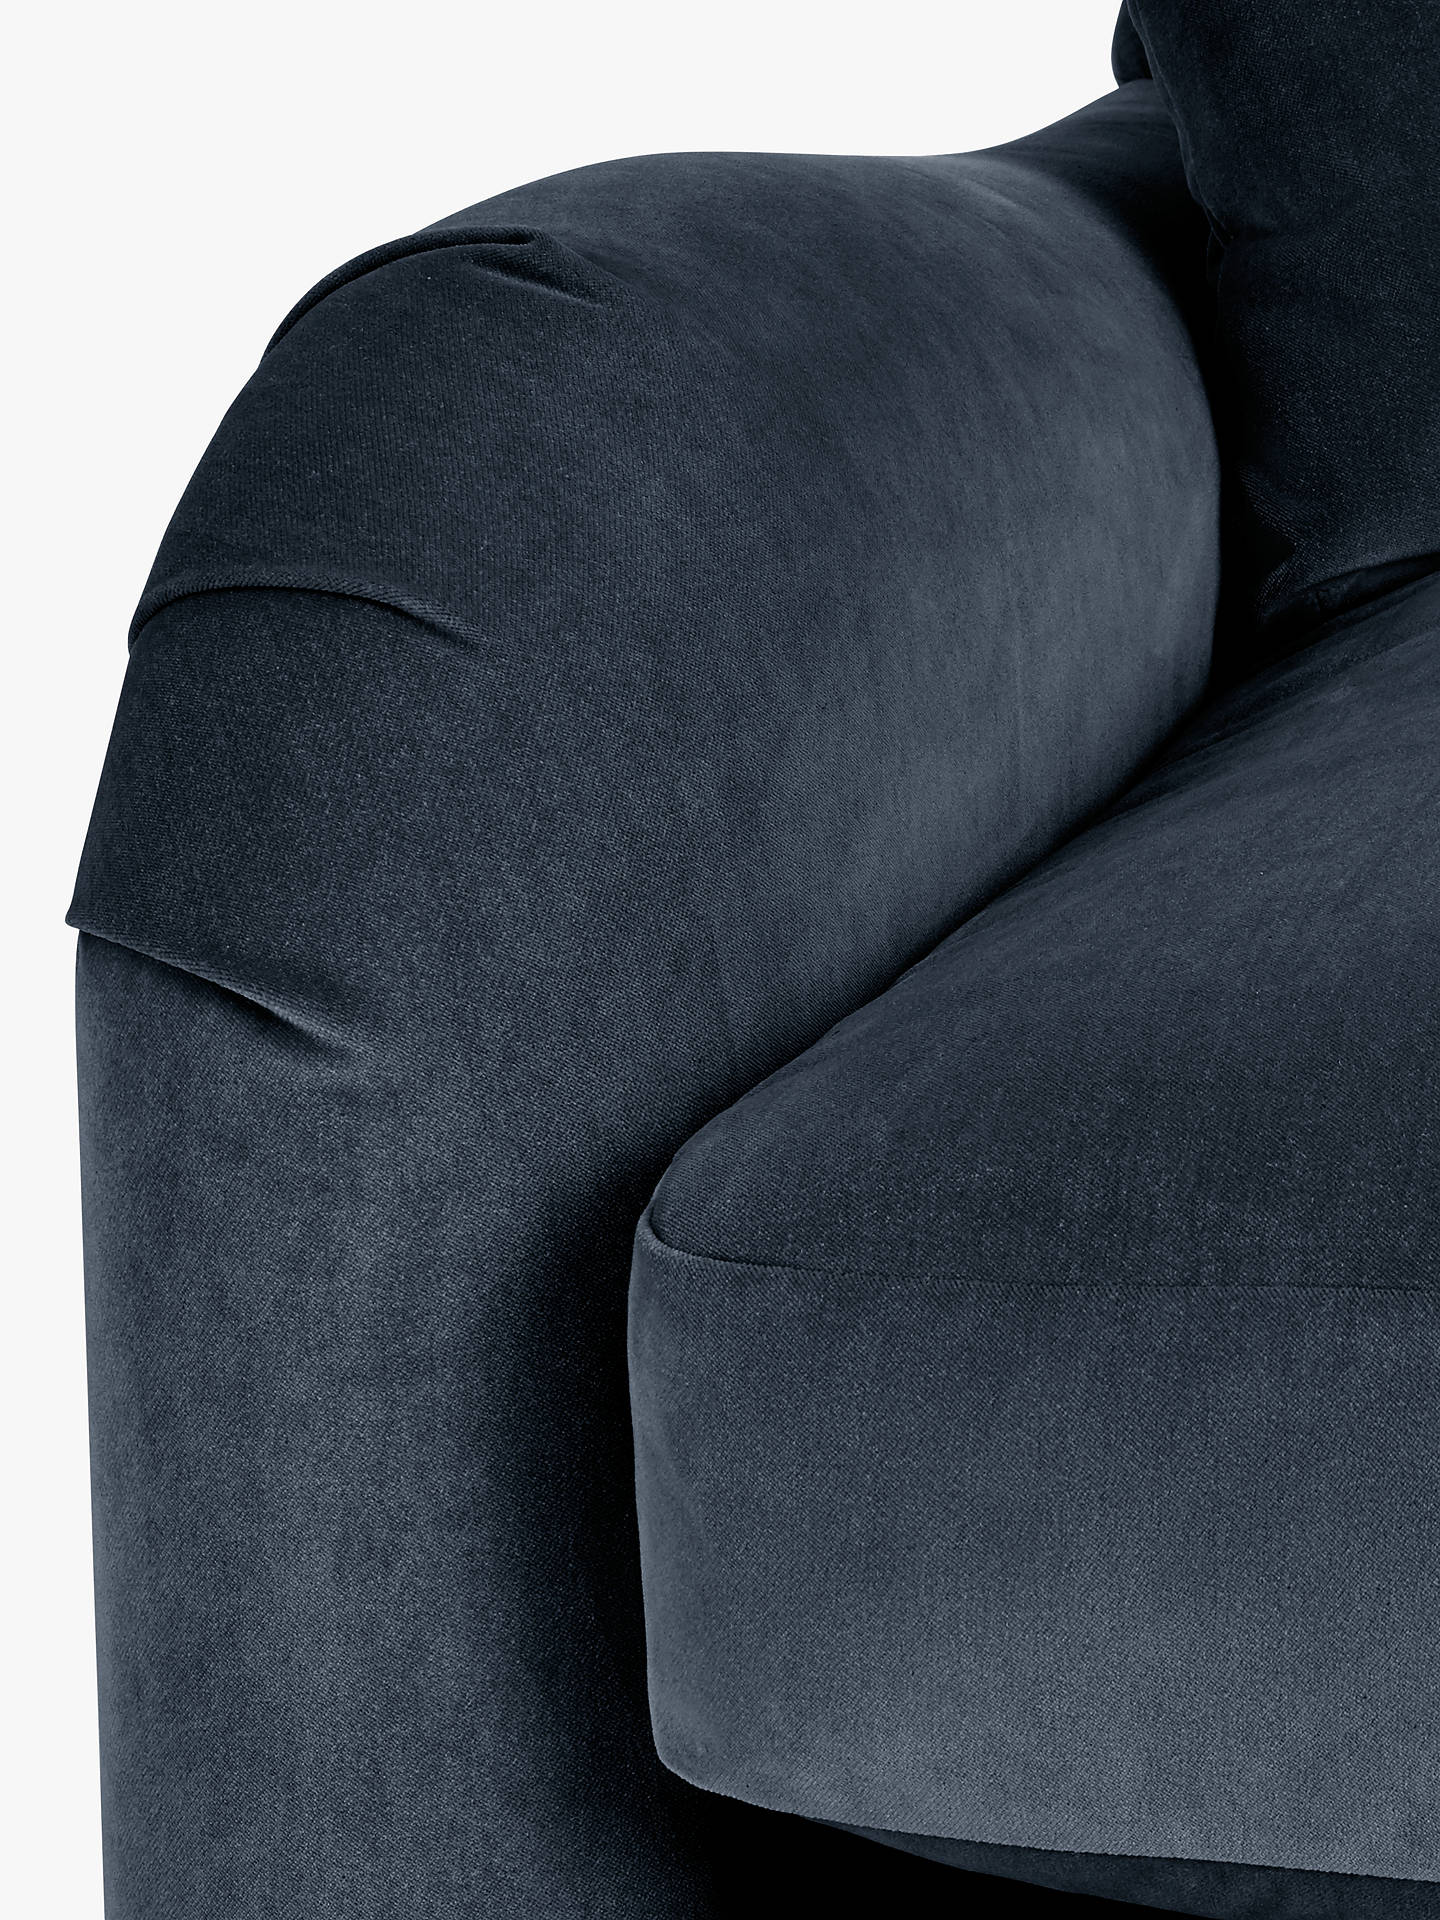 Buy Crumble Snuggler by Loaf at John Lewis, Clever Velvet Liquorice Online at johnlewis.com